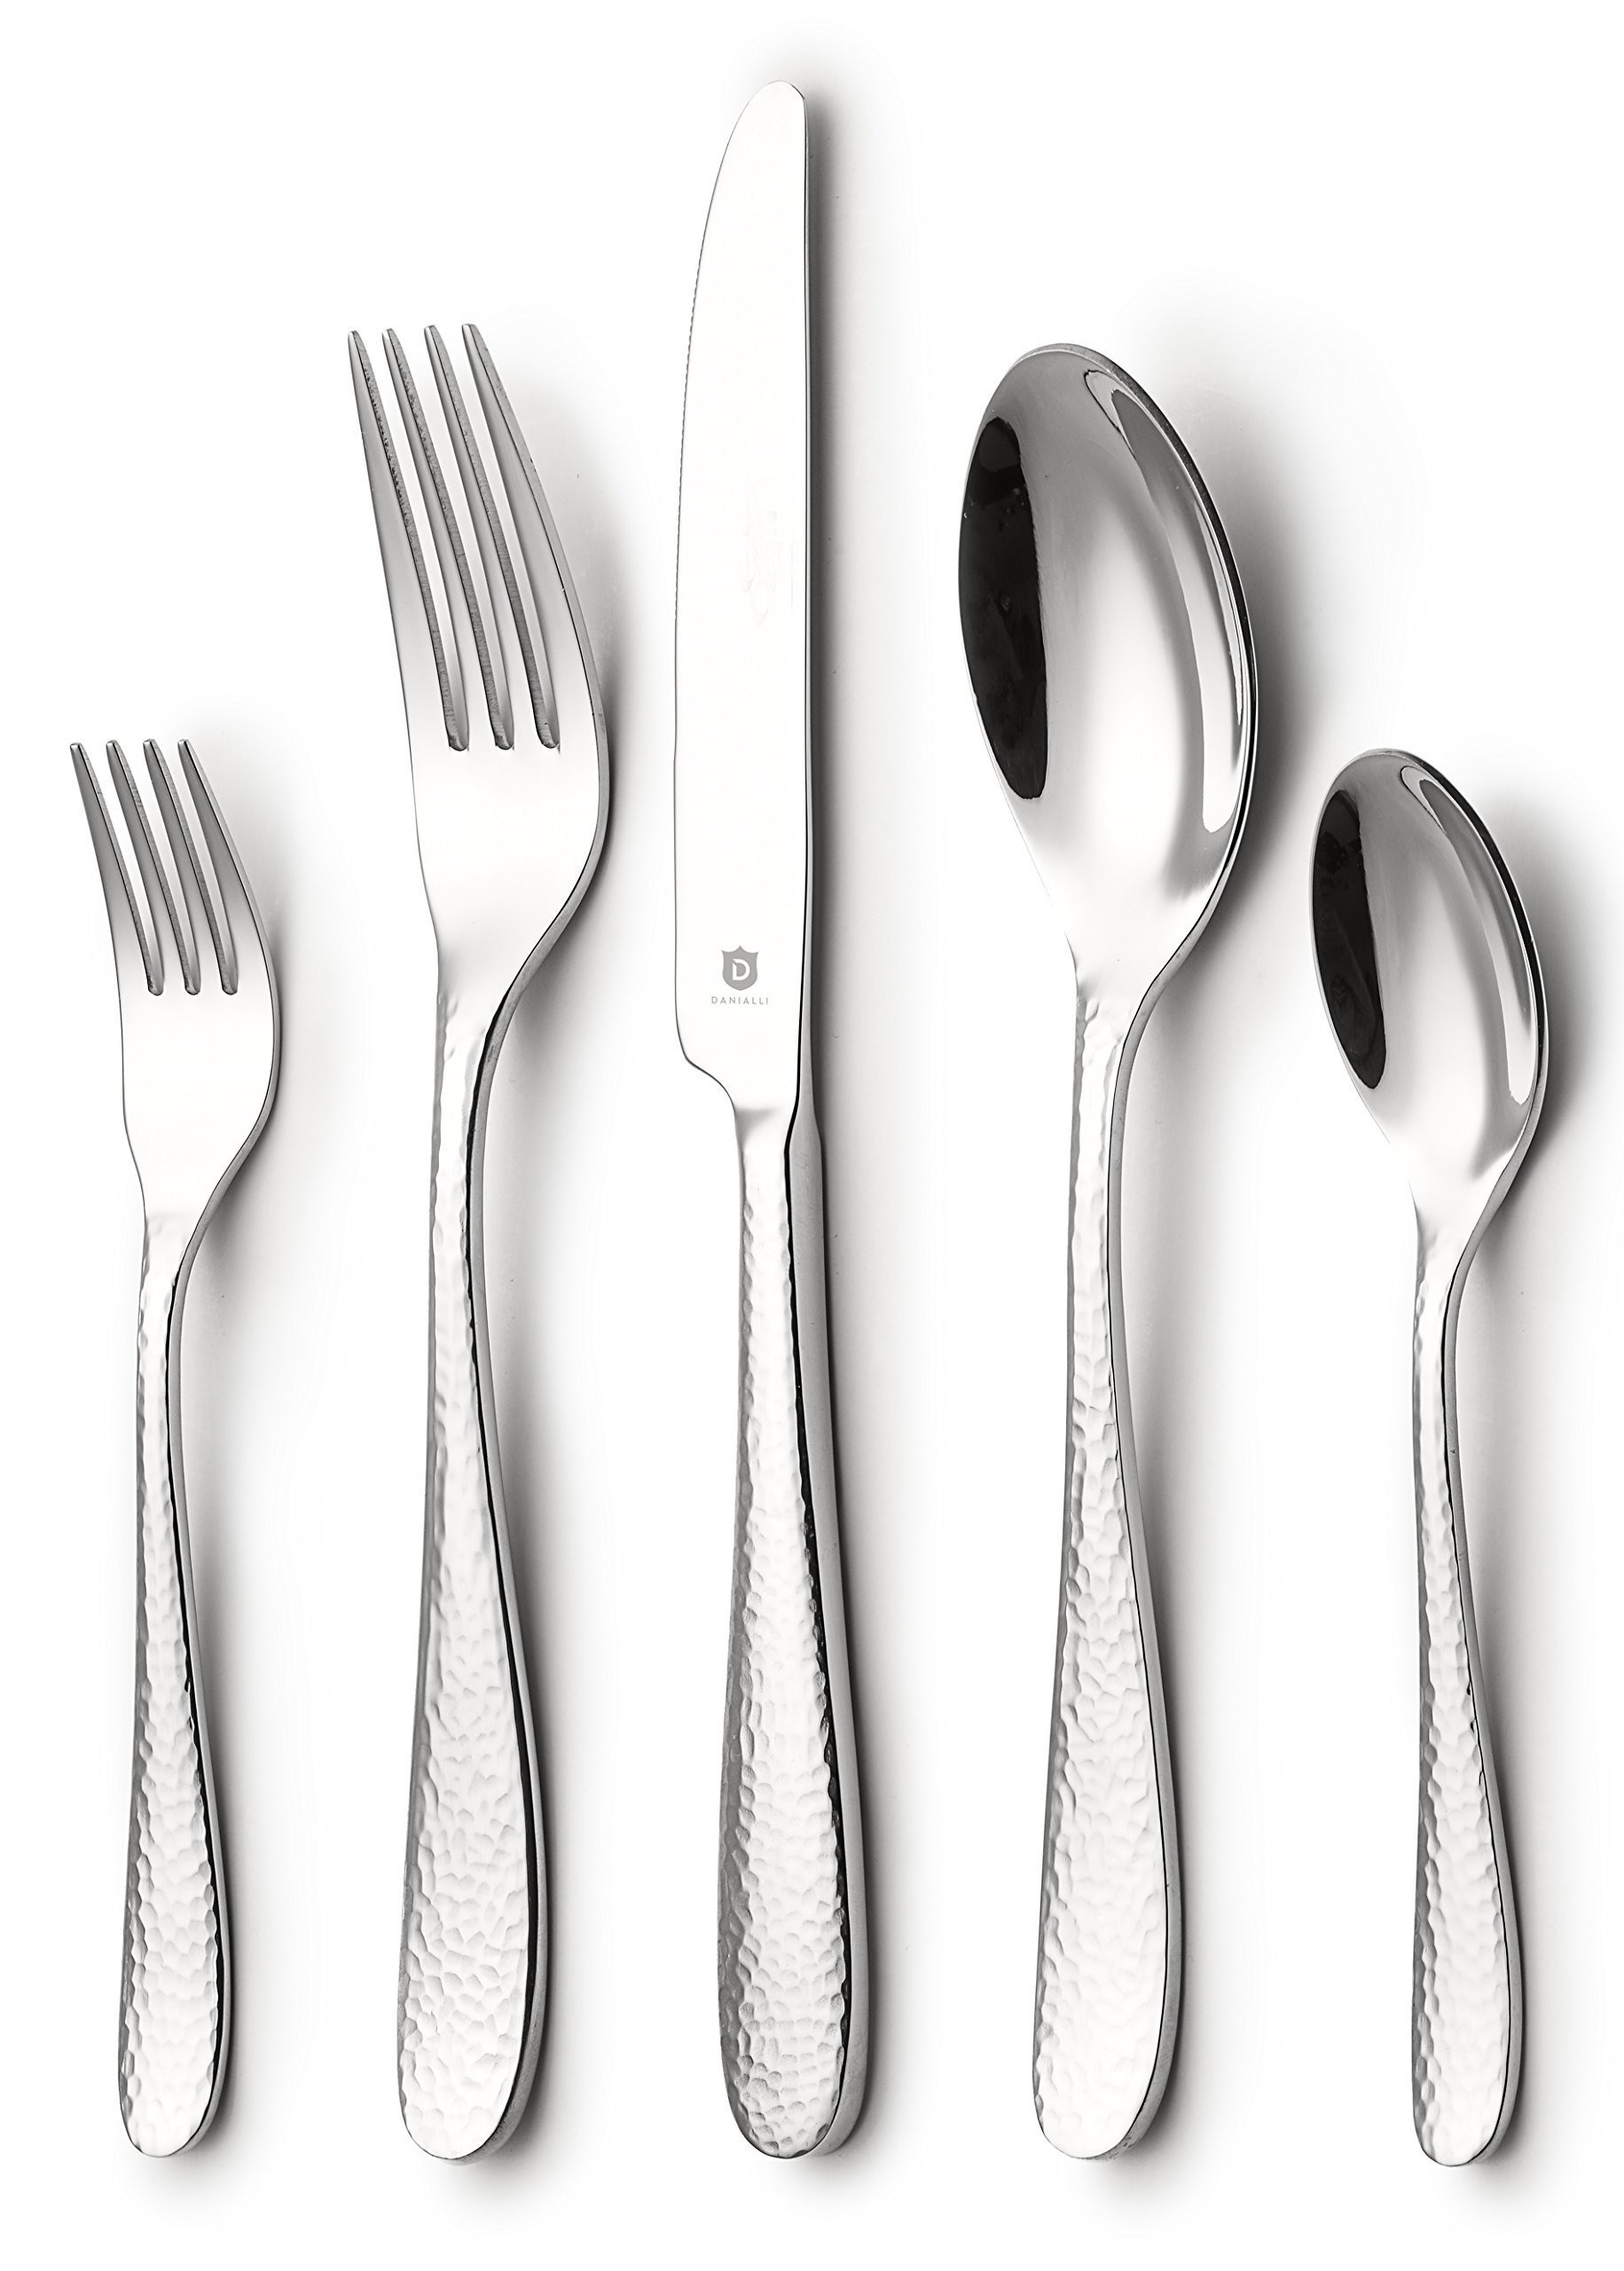 DANIALLI 30-Piece Flatware Set For 6, Modern Hammered Design Silverware Set, 18 10 Stainless Steel Utensils, Include Knife/Fork/Spoon, Mirror Polished Set of Cutlery, Dishwasher Safe